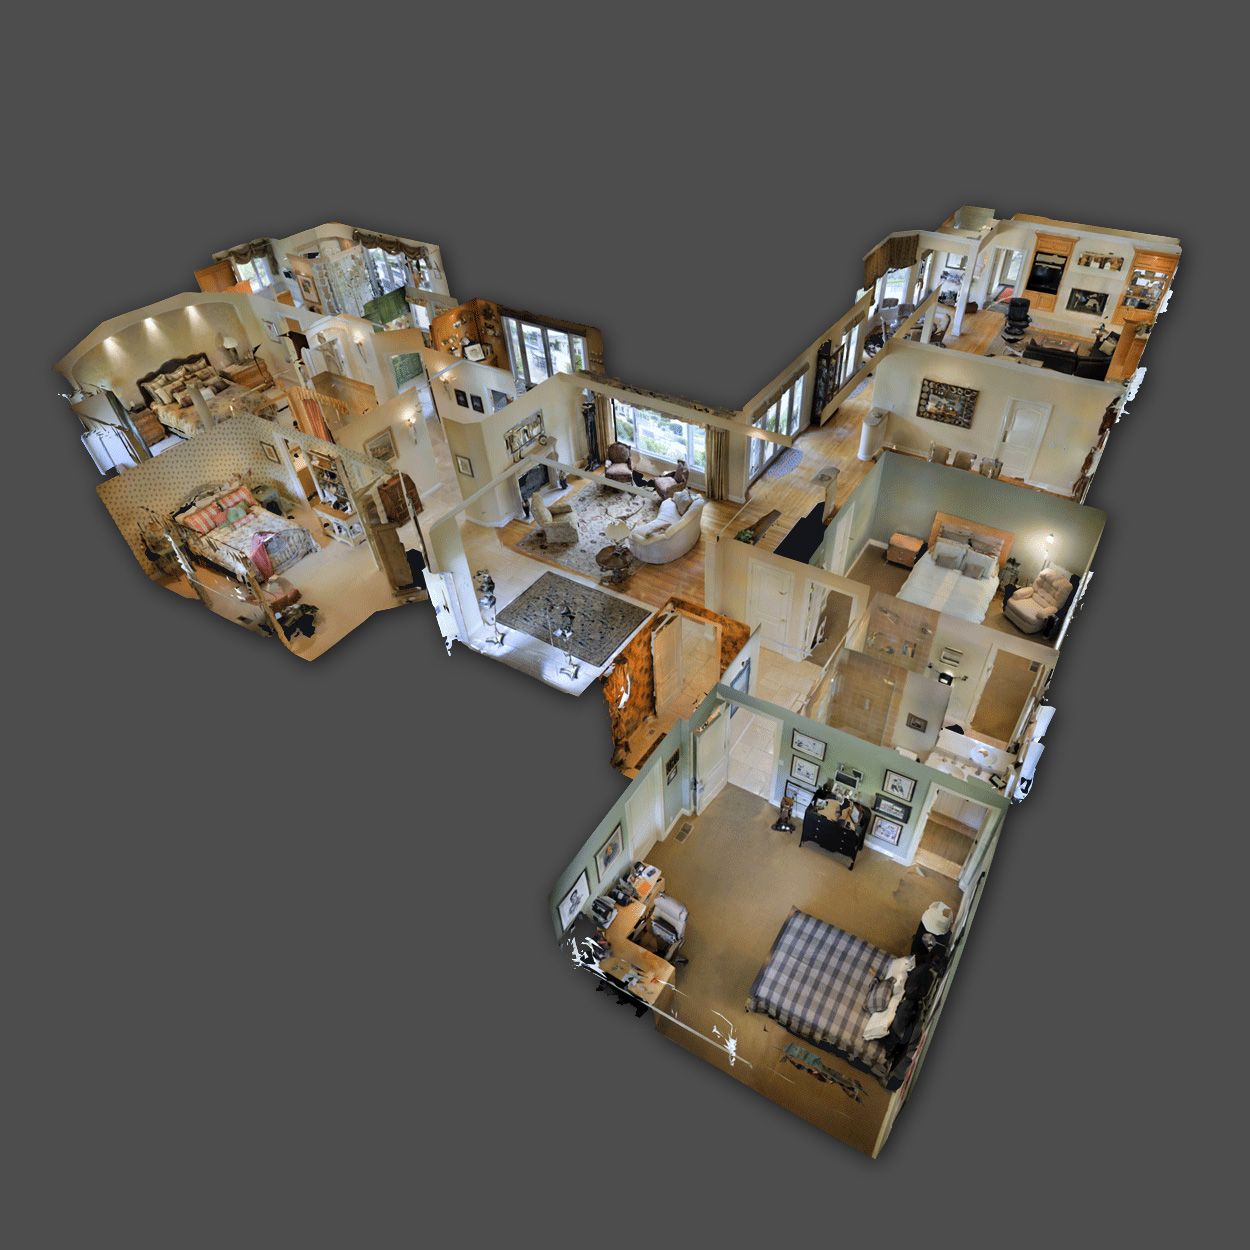 3D Layout View